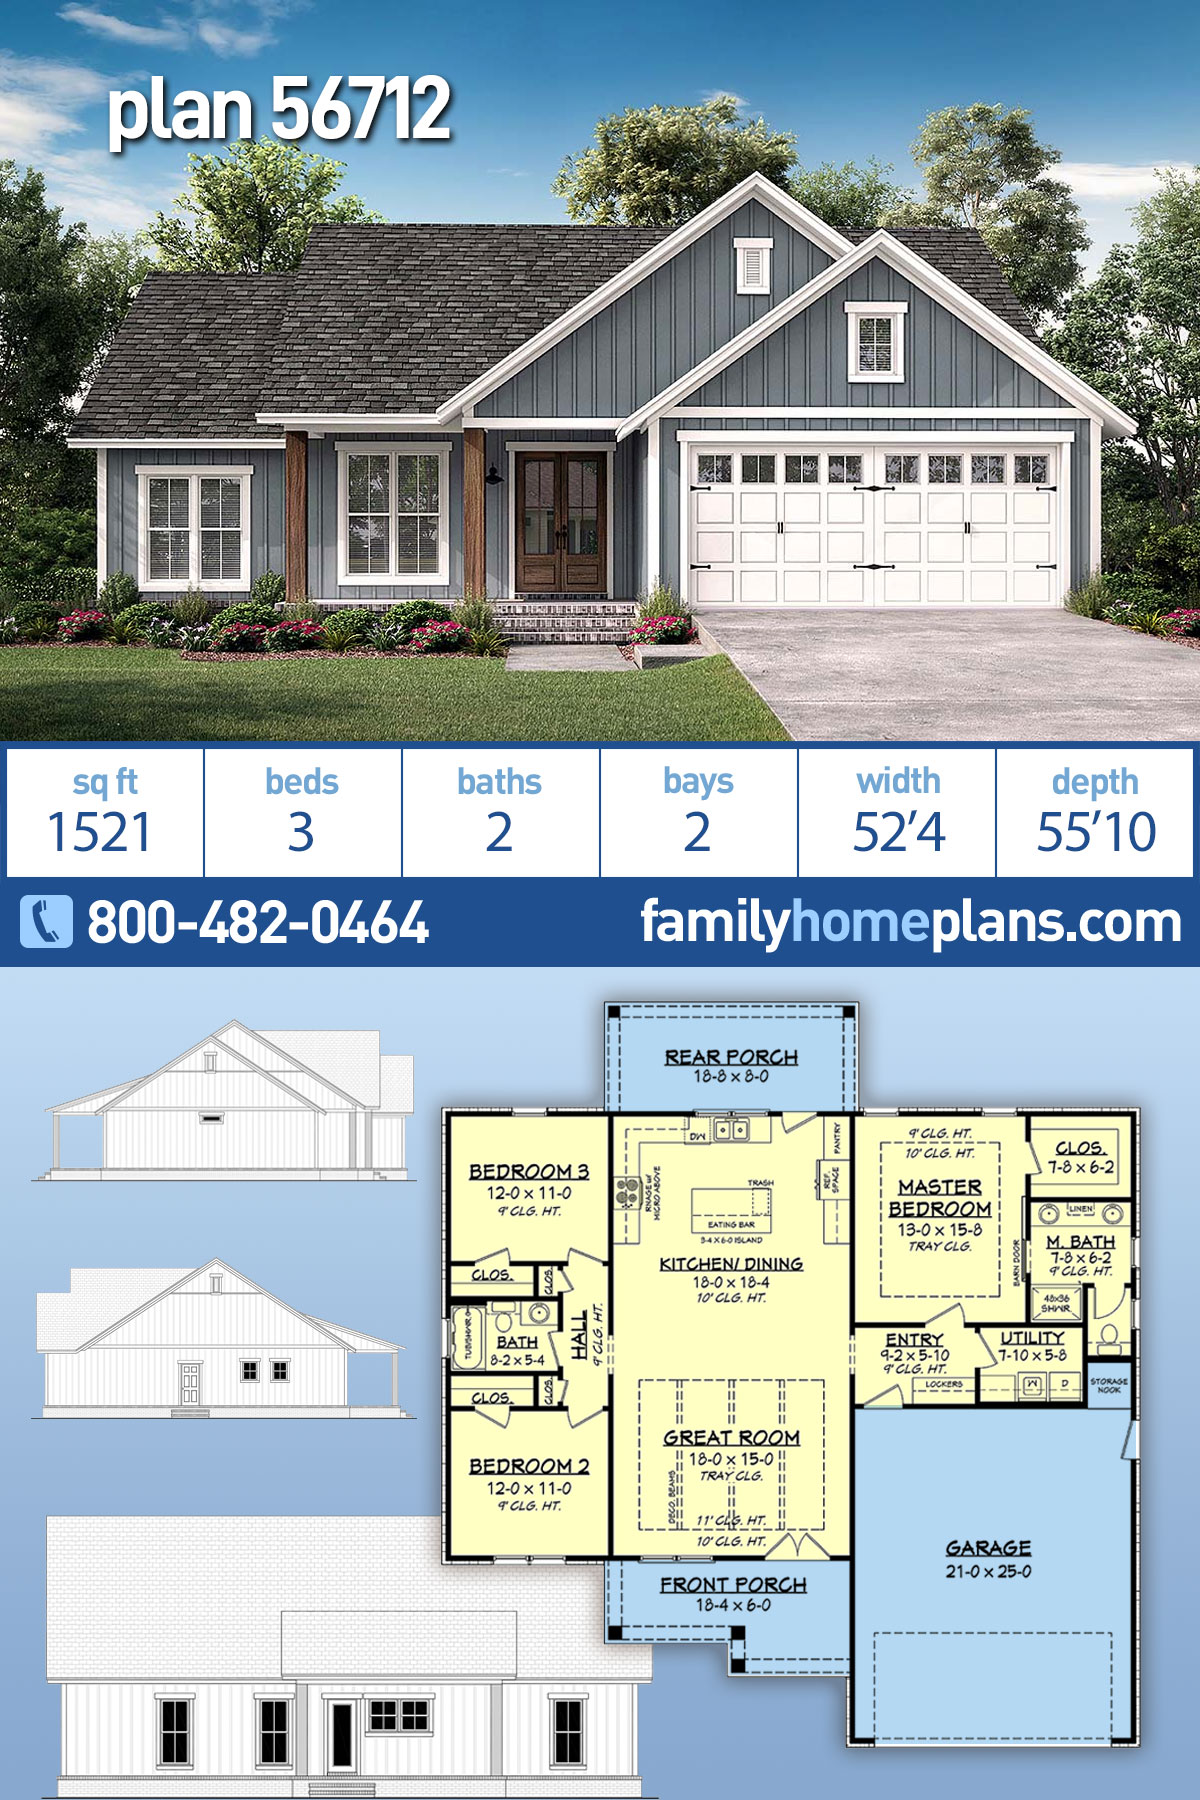 Country, Modern Farmhouse, Southern, Traditional House Plan 56712 with 3 Beds, 2 Baths, 2 Car Garage